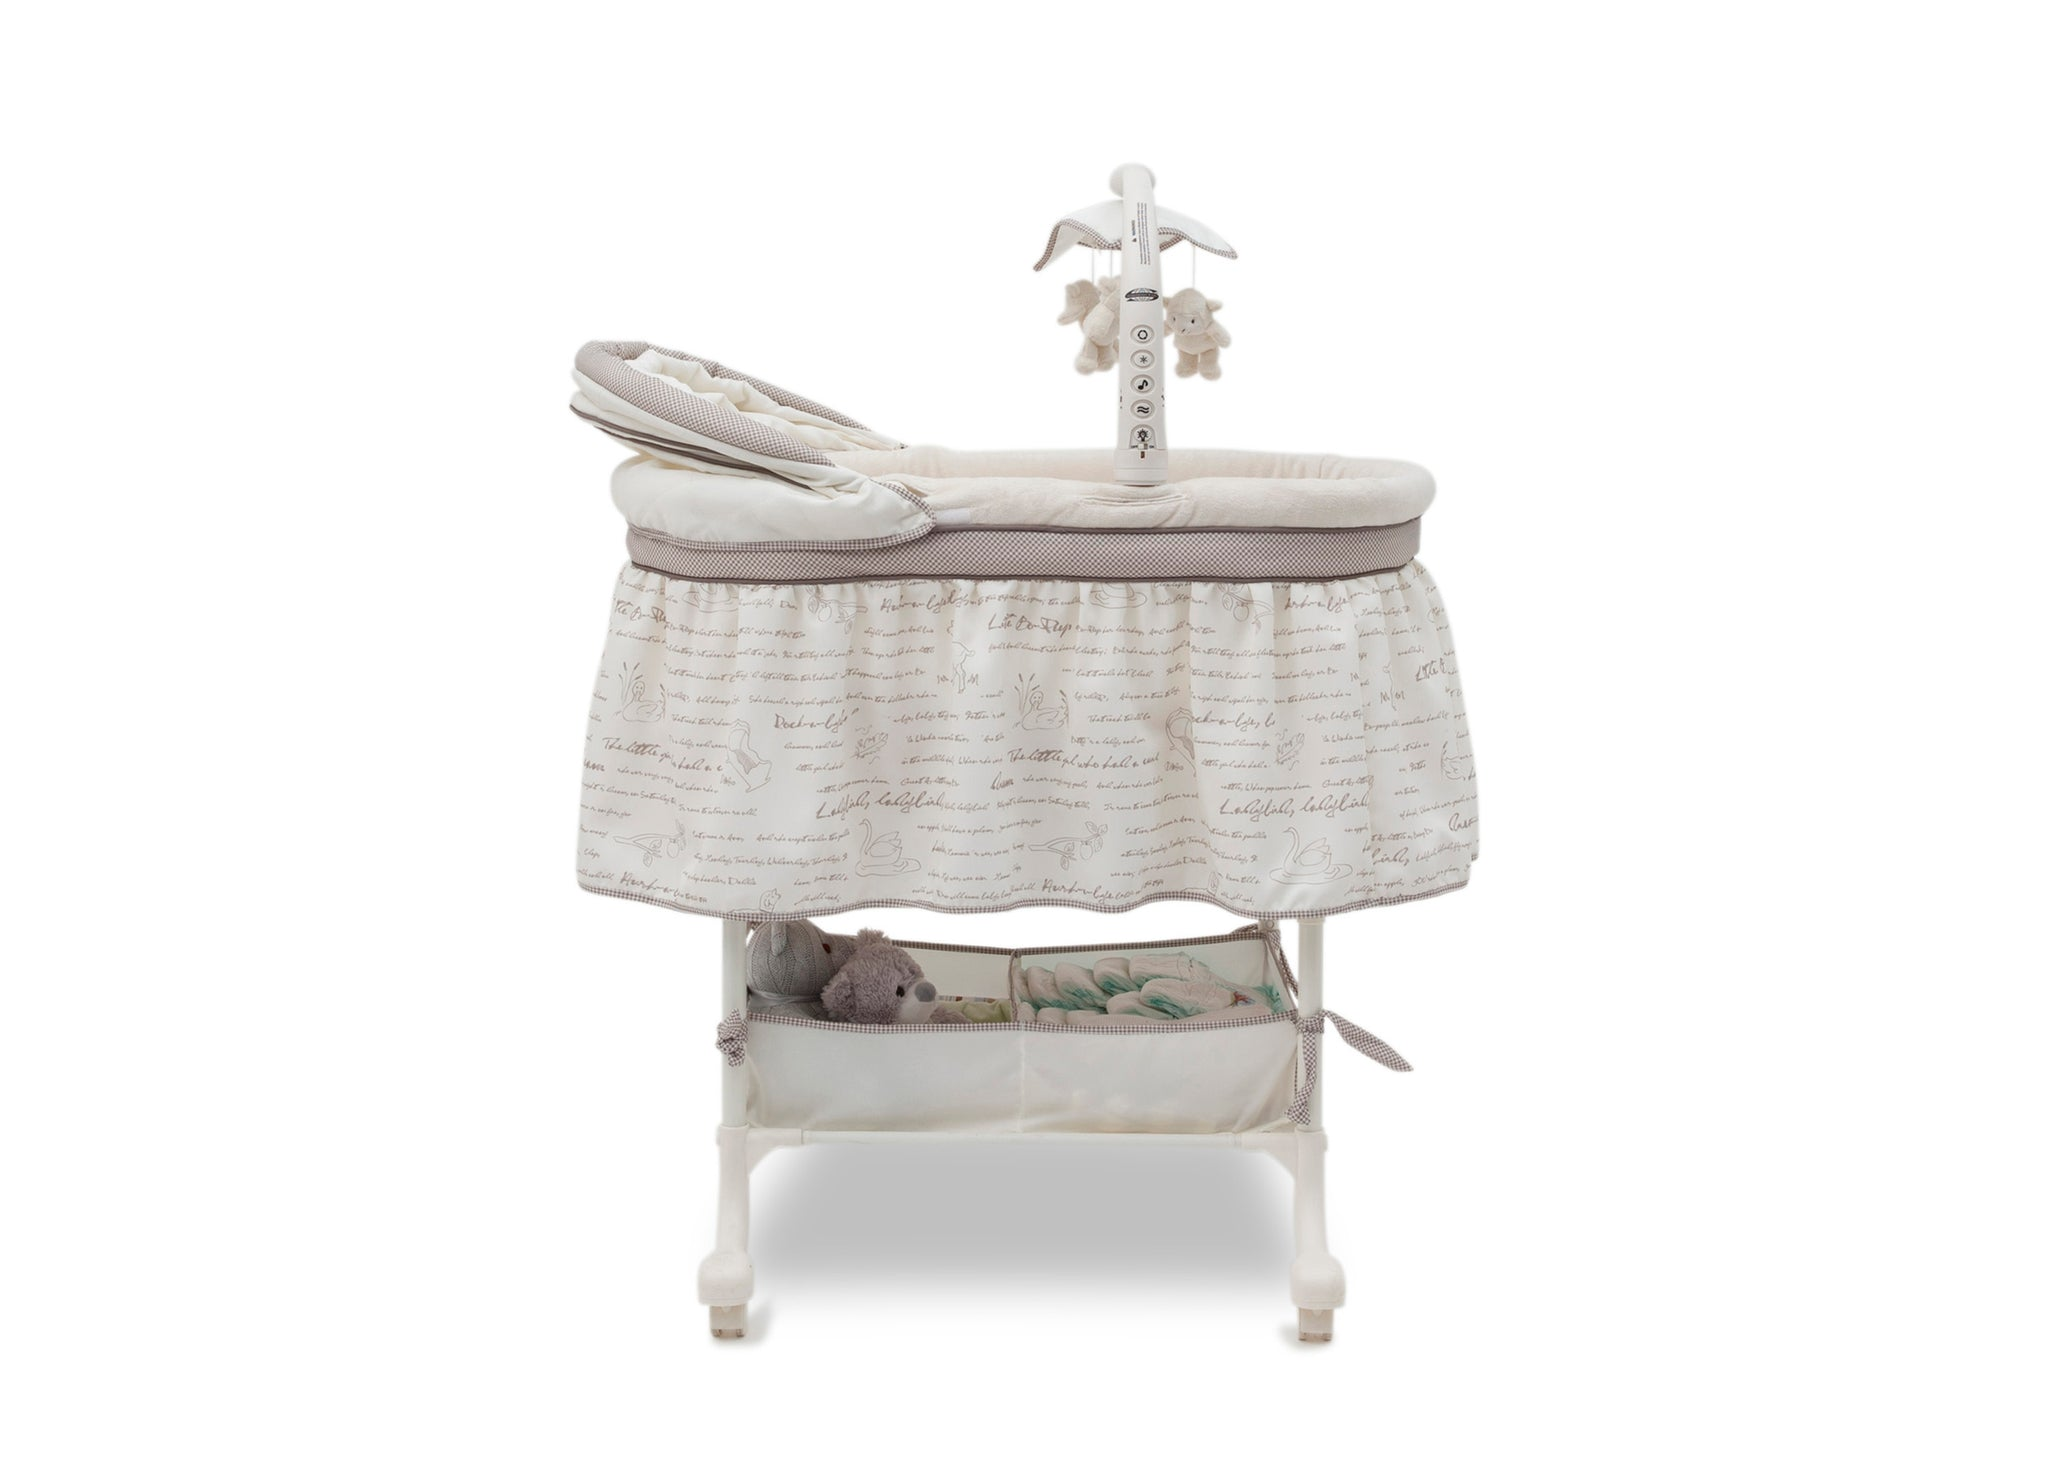 Simmons Kids Nursery Rhyme (172) Deluxe Gliding Bassinet, Side Silo View b3b